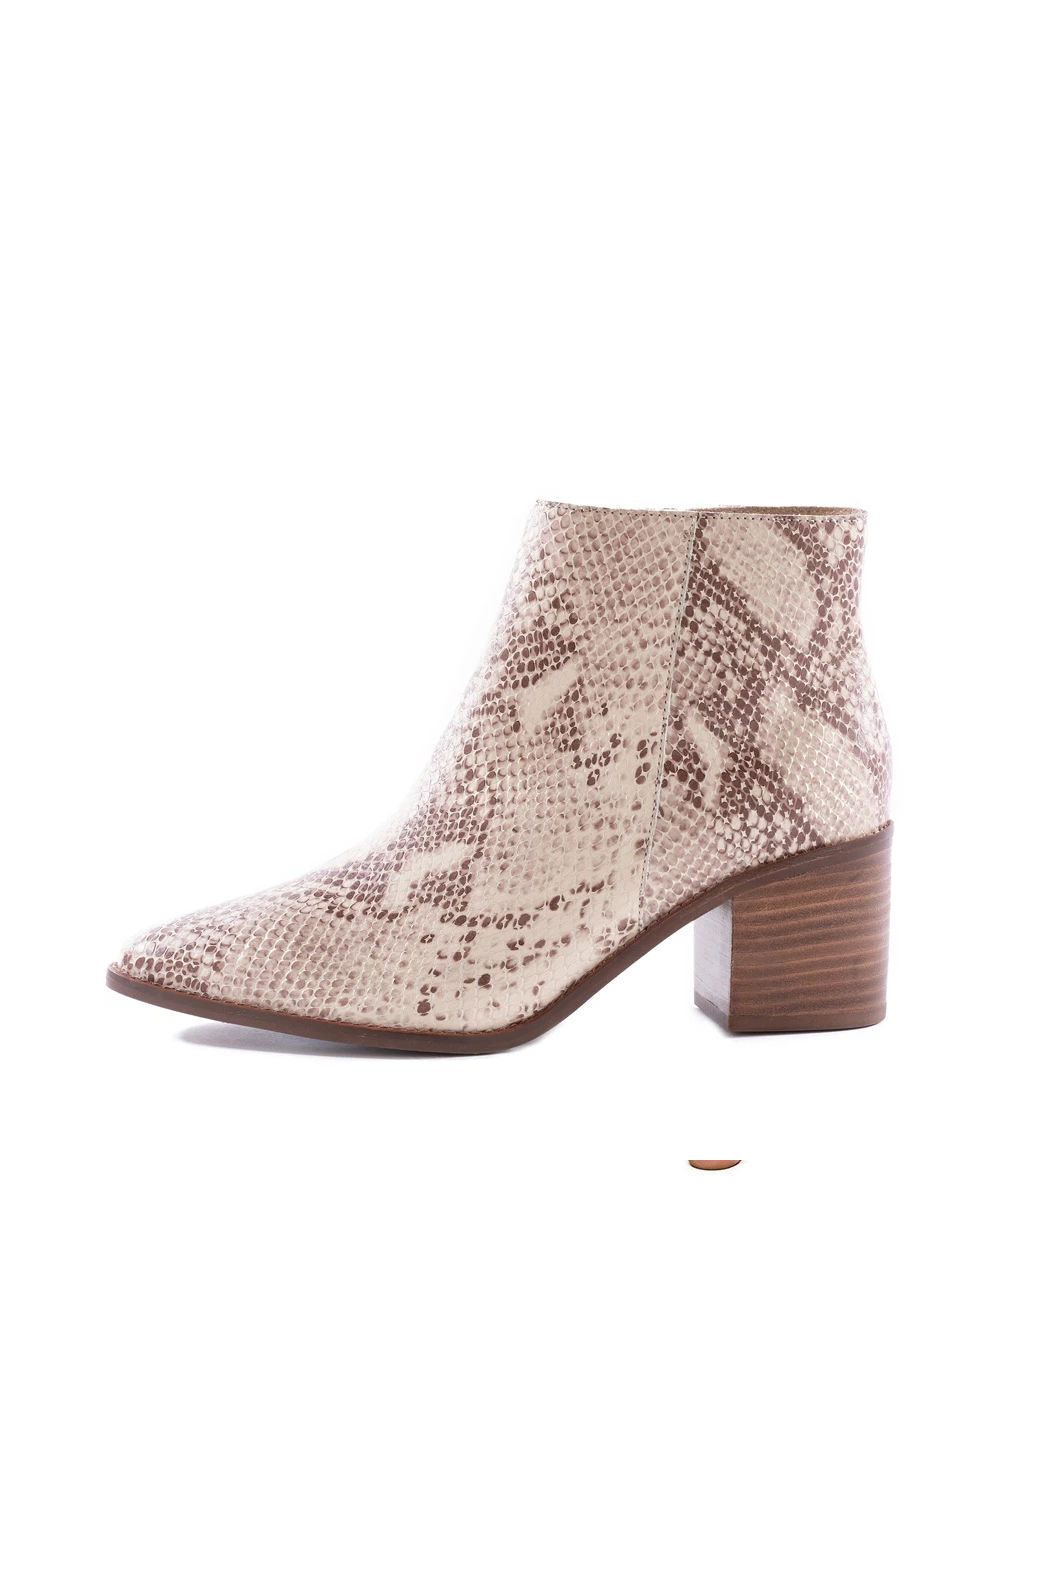 Seychelles For The Occasion Bootie - Front Cropped Image